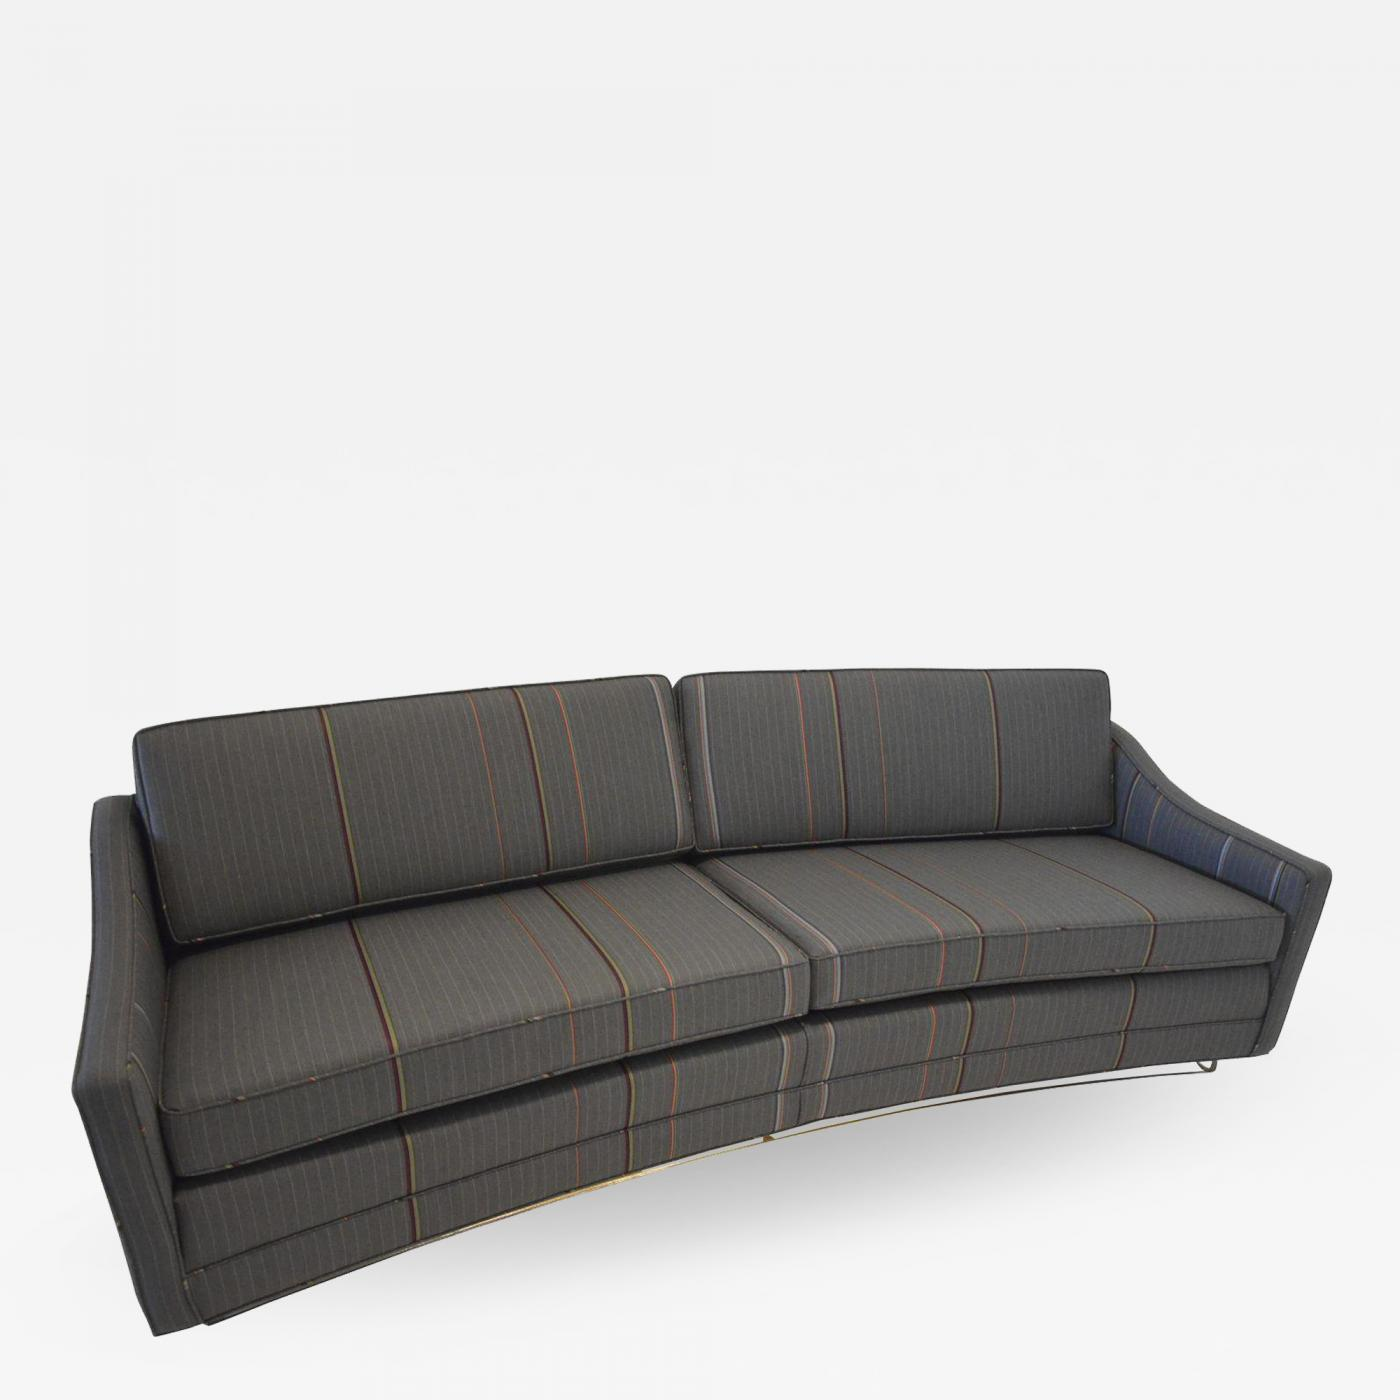 modern twine curved arm sofa who has the best quality sofas harvey probber mid century lucite based